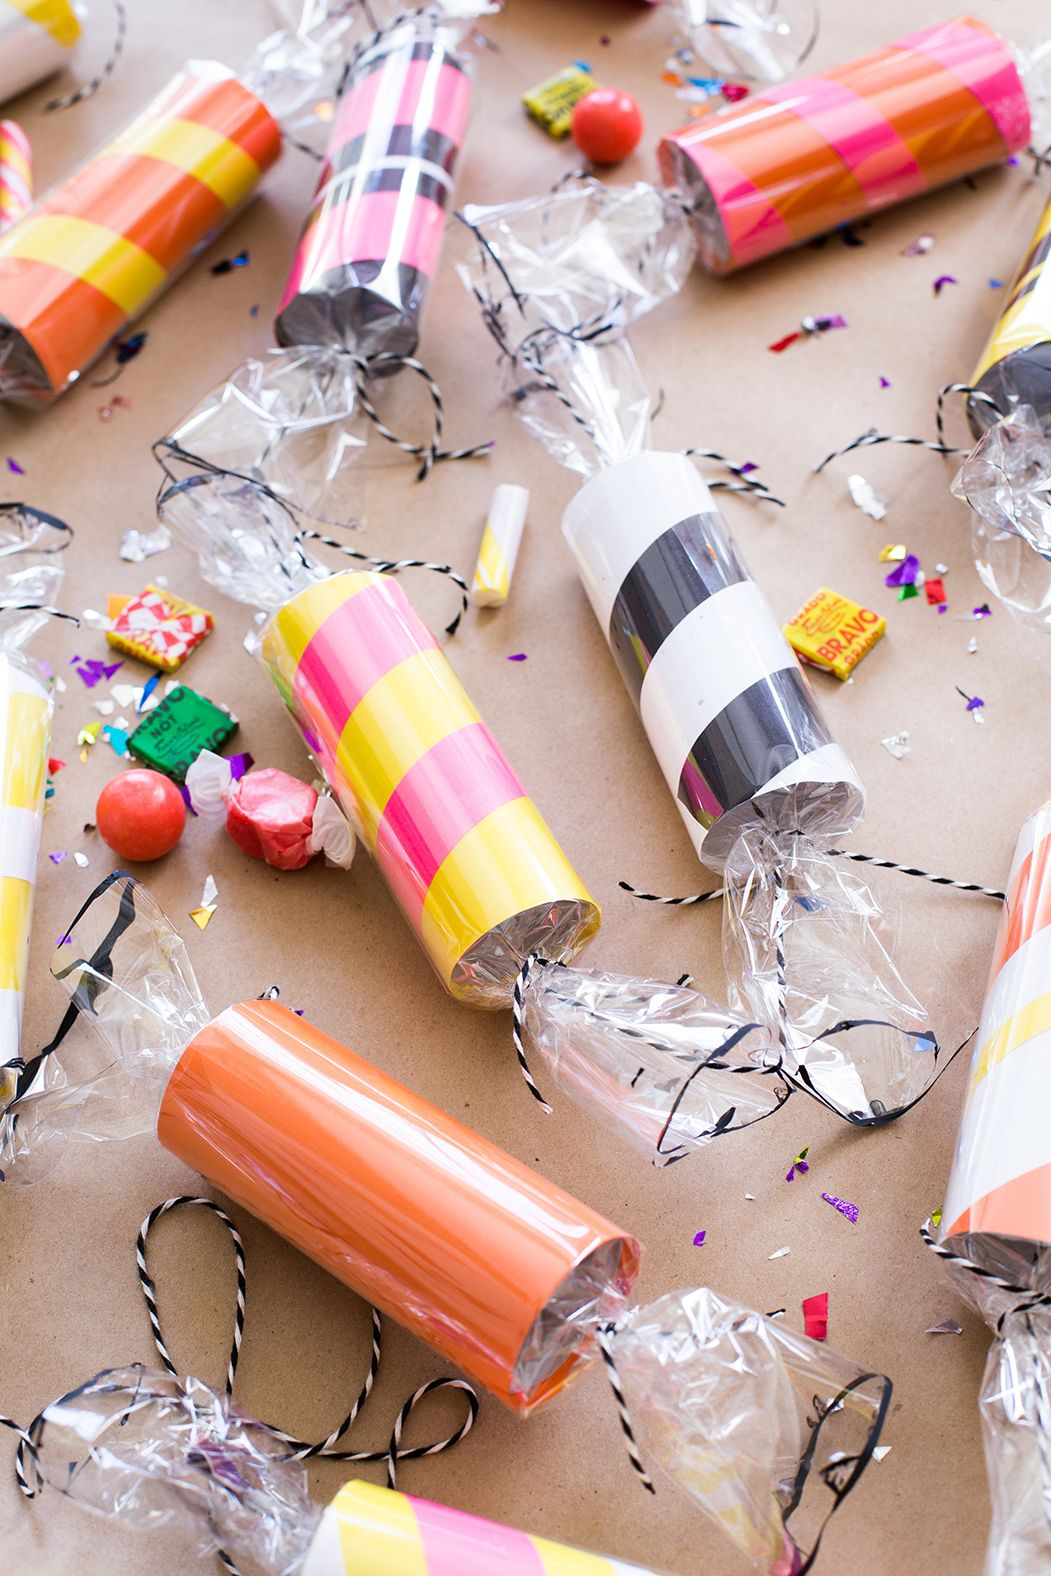 Diy Toilet Paper Roll Candy Garland Toilet Paper Crafts Paper Roll Crafts Toilet Paper Roll Crafts